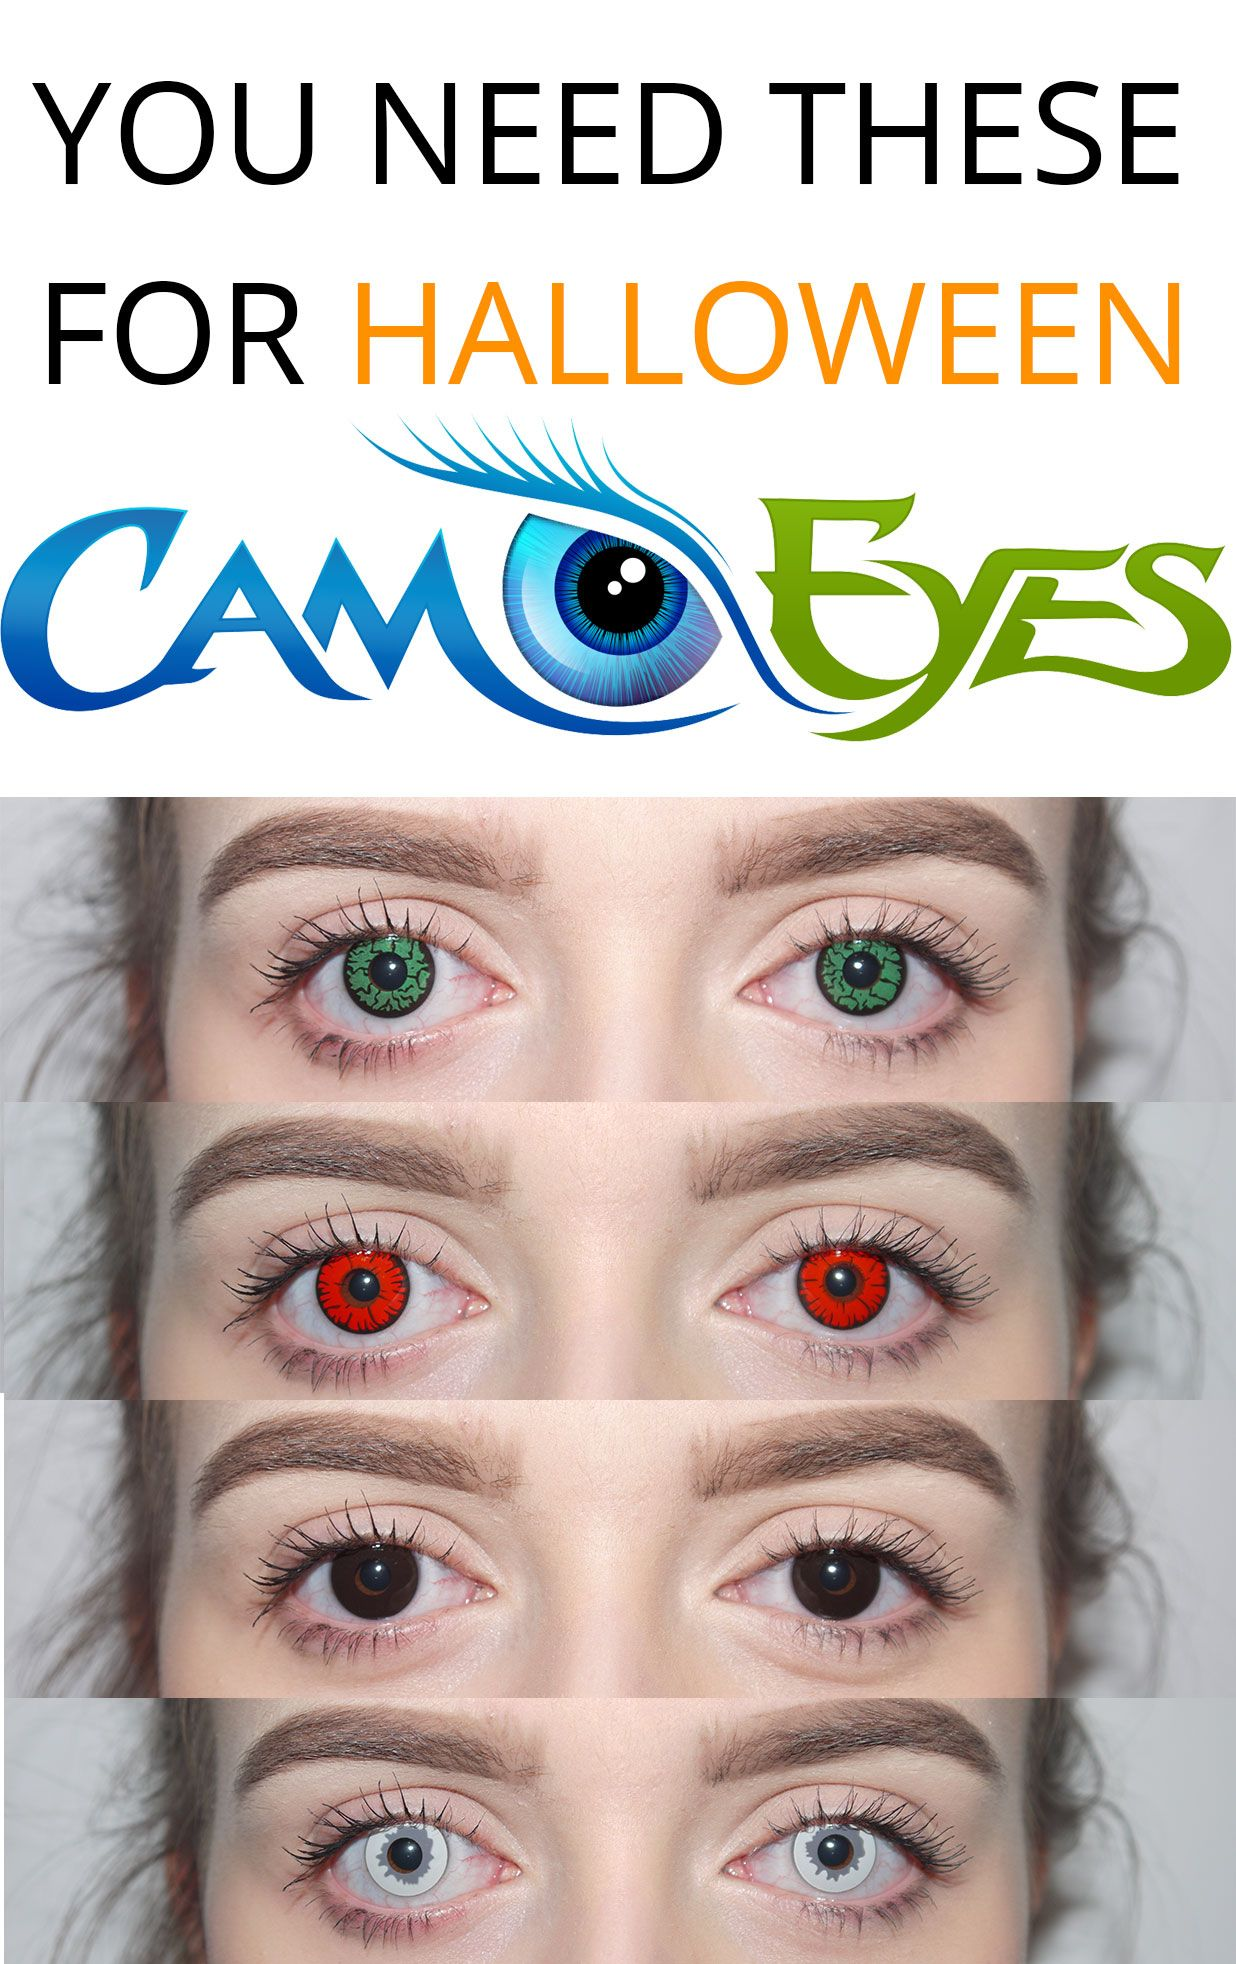 camoeyescom halloween contact lenses the ultimate halloween accessory your costume enhanced 10x